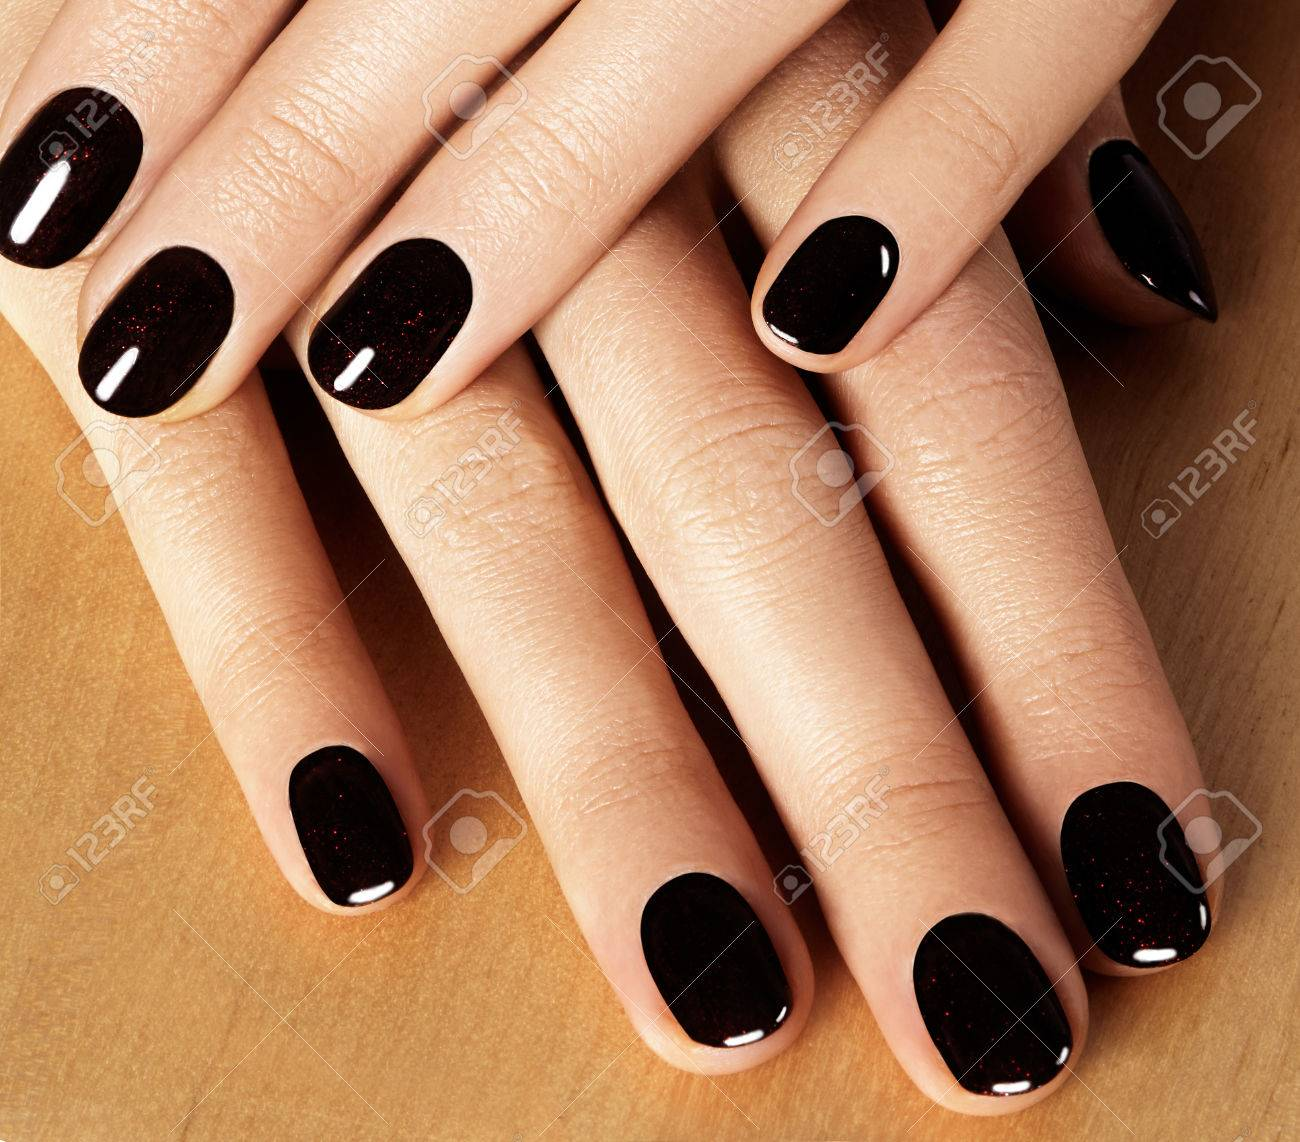 Black Nail Polish Manicured Nails With Manicure Dark Nailpolish